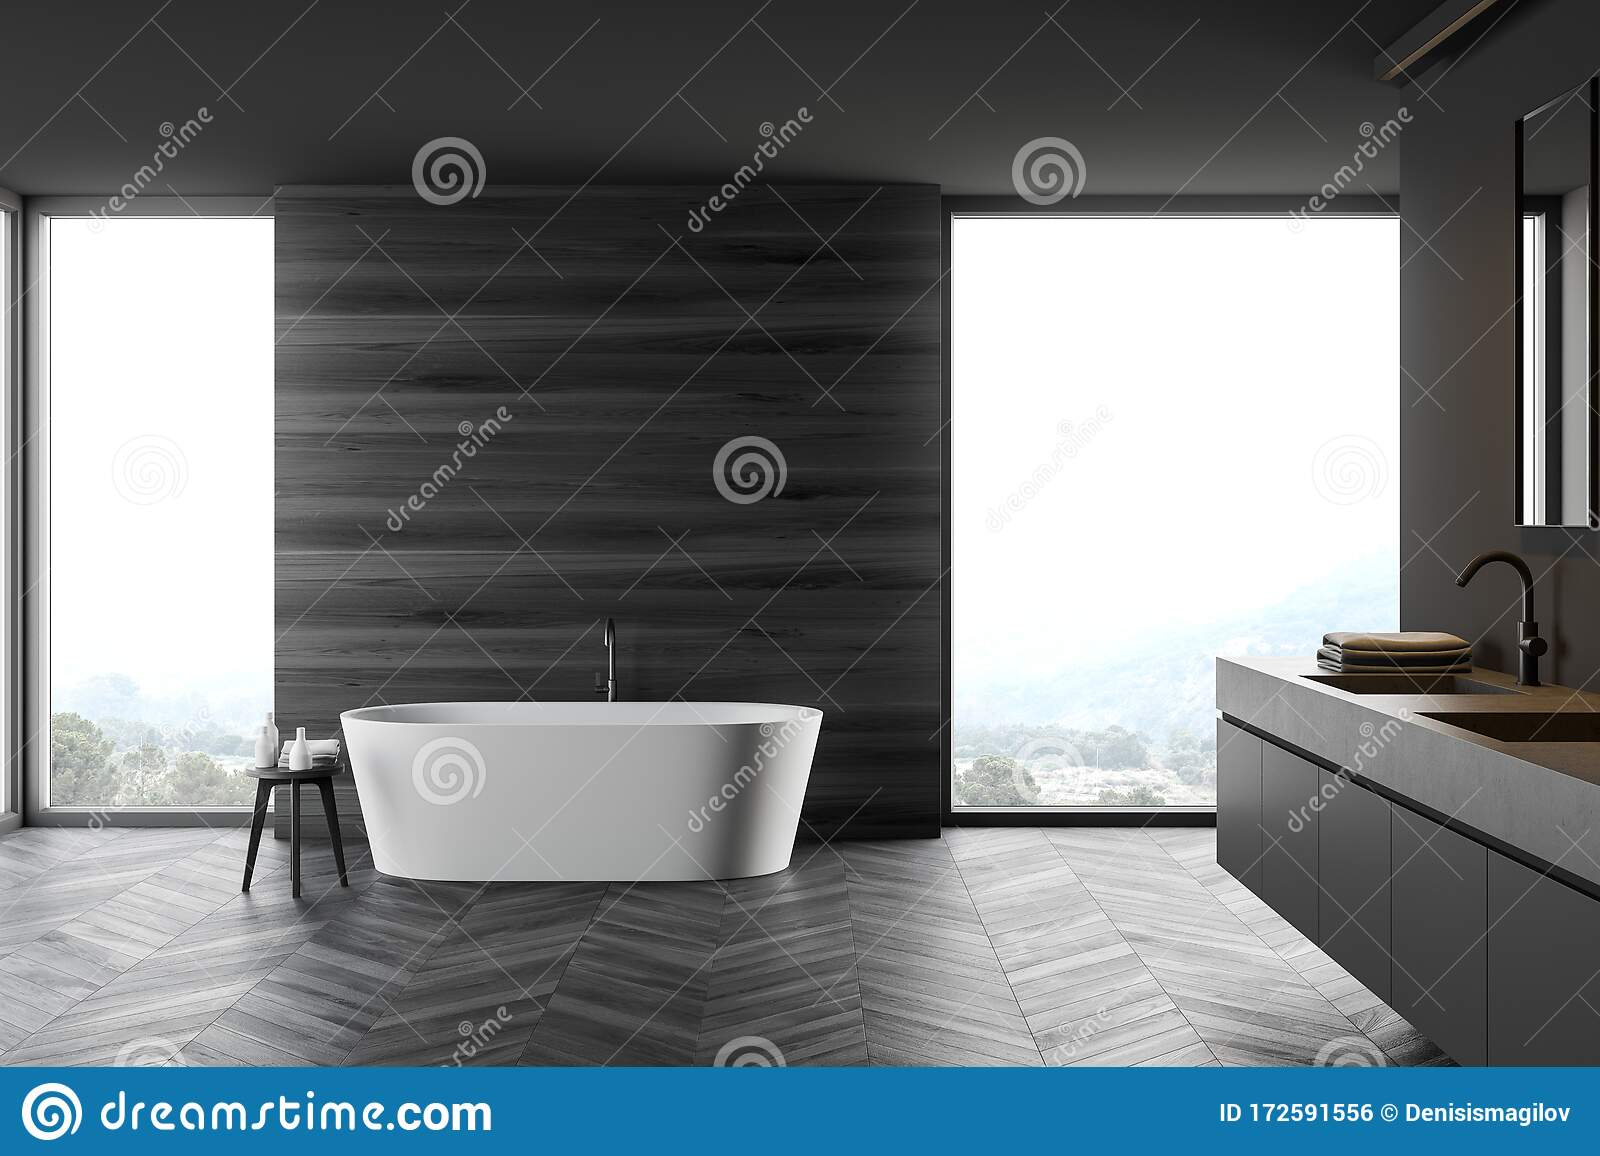 Gray And Wooden Bathroom With Tub And Sink Stock Illustration Illustration Of Home Grey 172591556